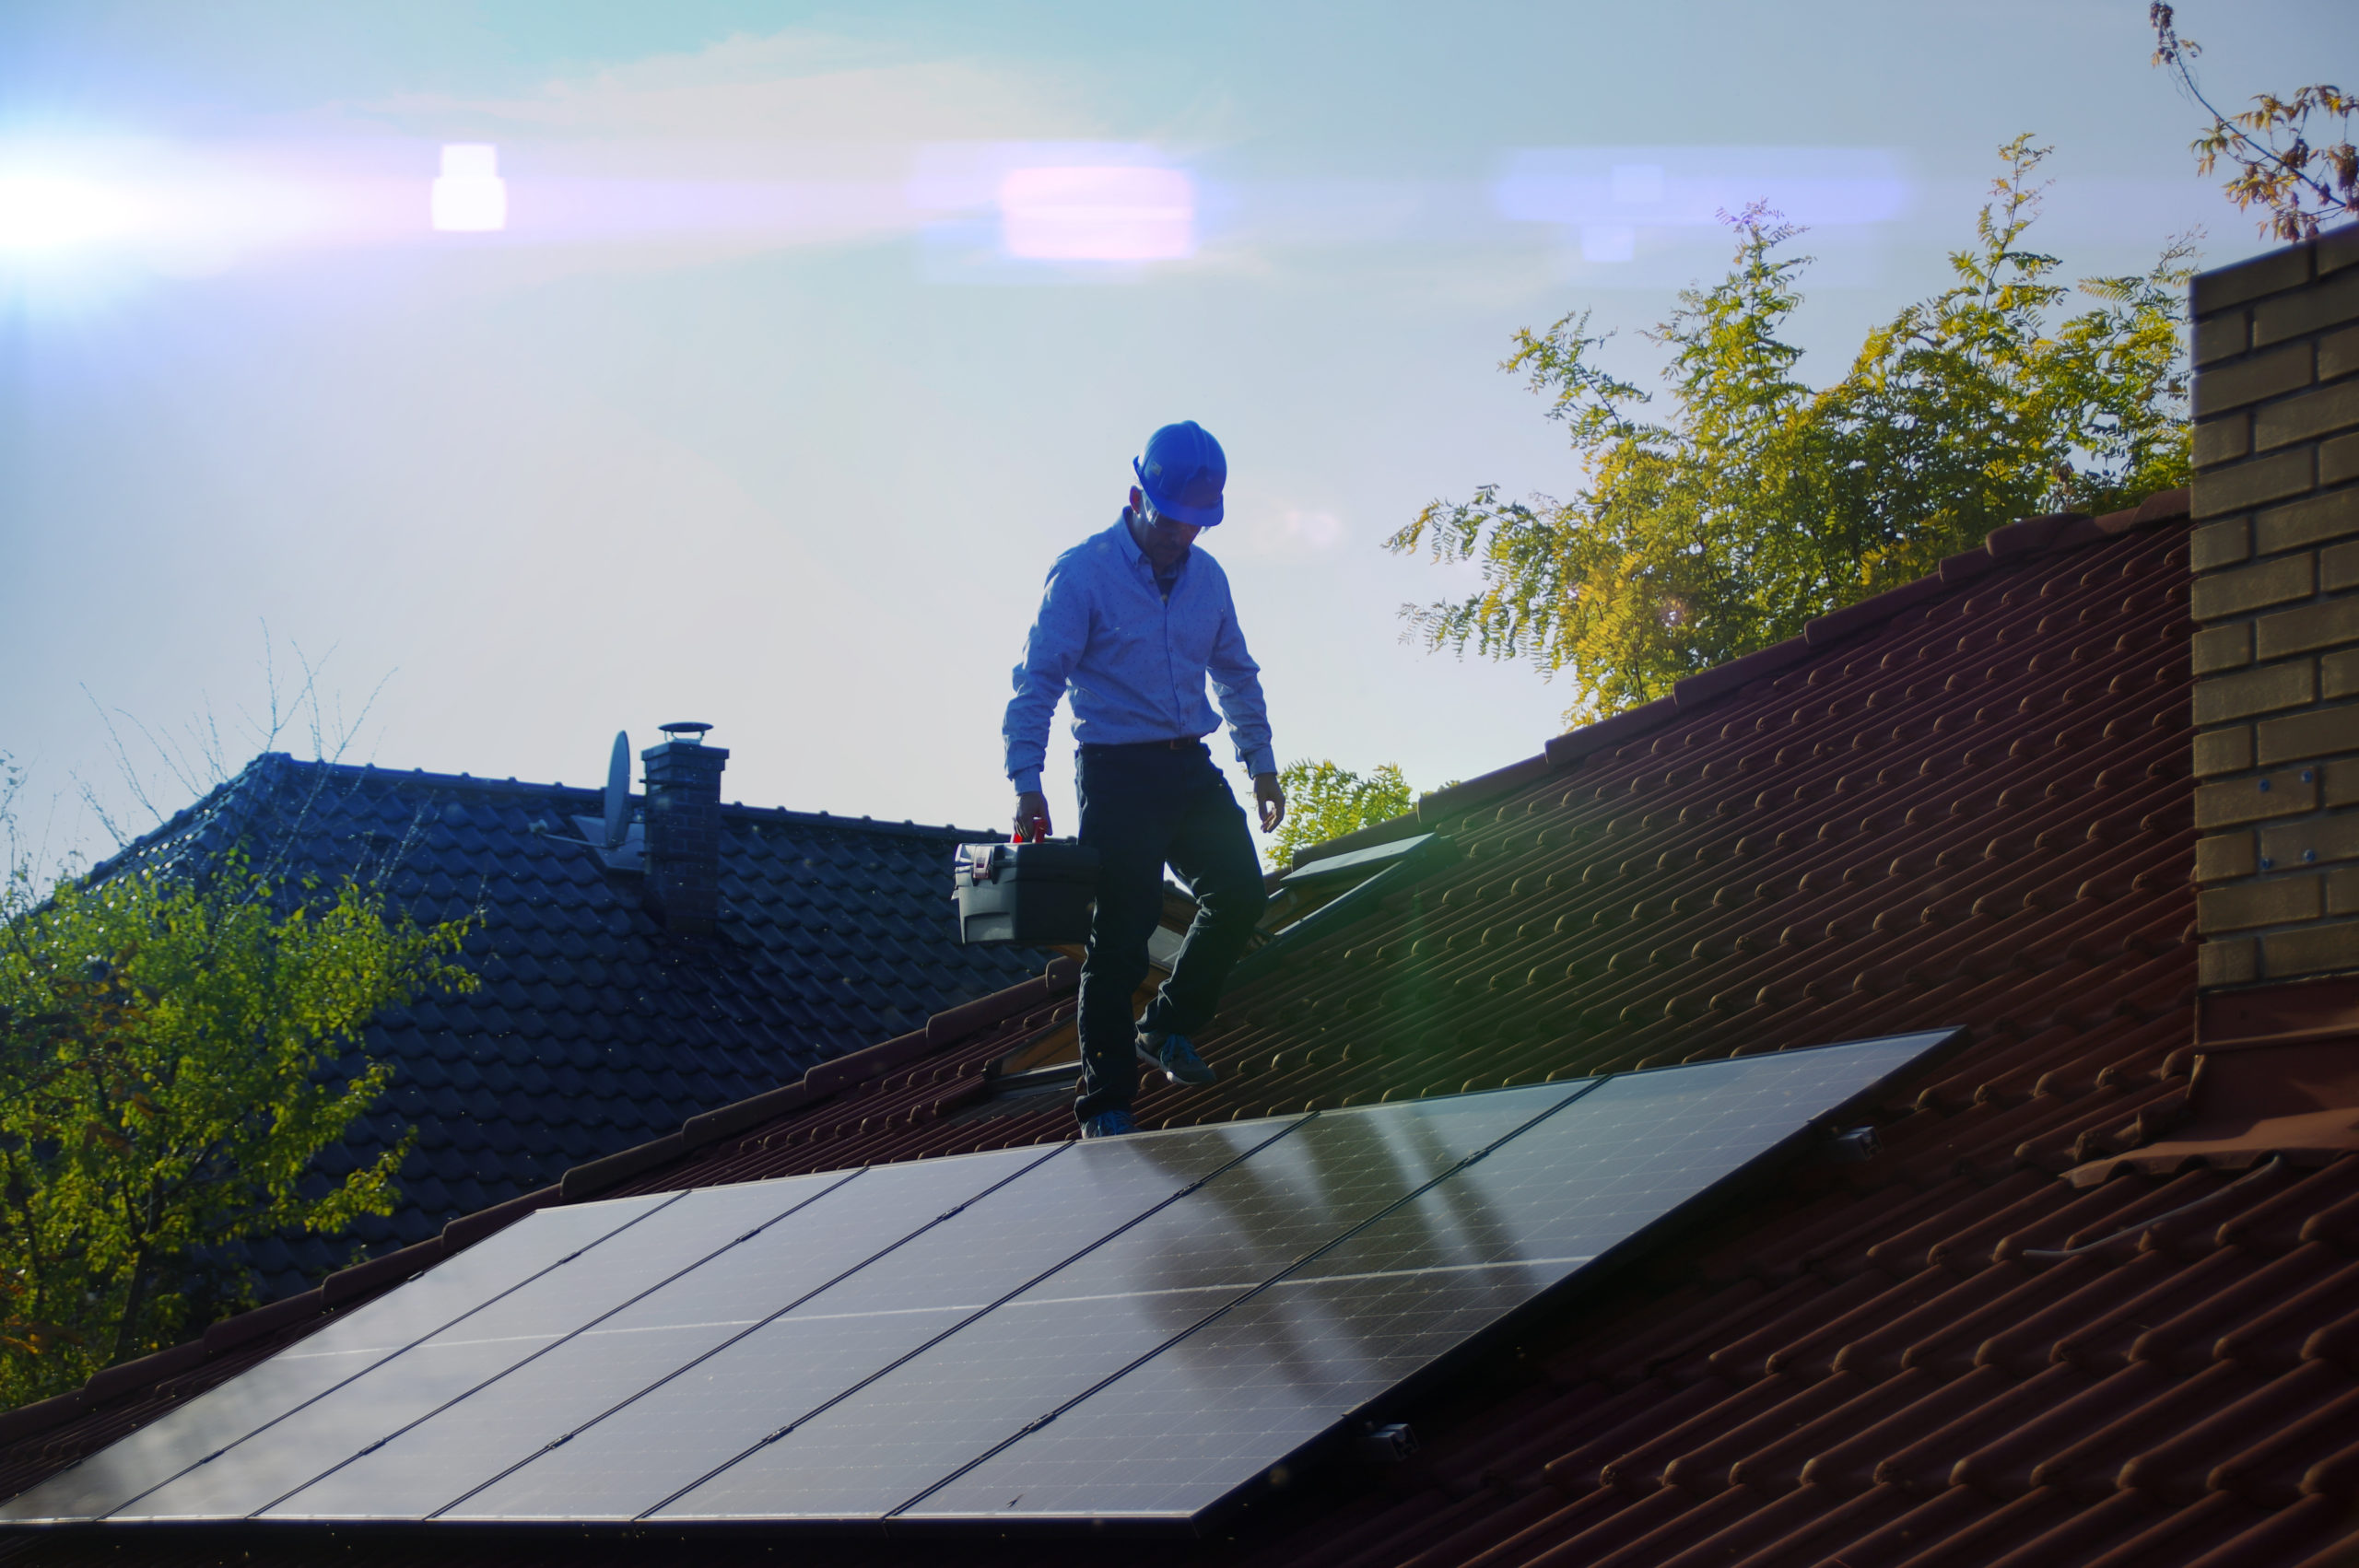 Man walk on house roof and installs solar panels. Photovoltaic, alternative and renewable energy, green power, ecology and home electricity production.